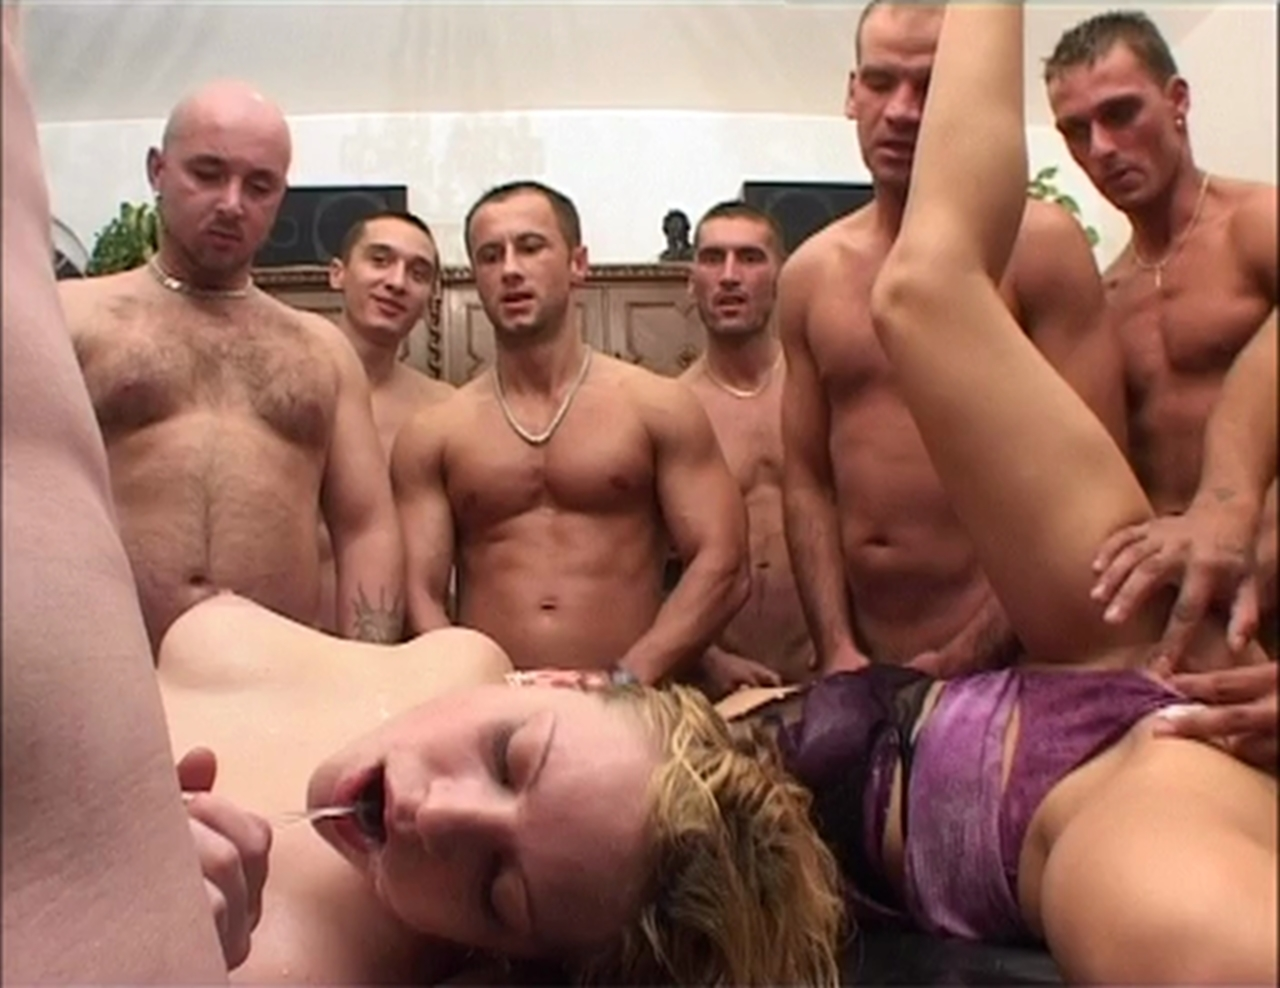 Extreme gang bang xxx compilation did you 7